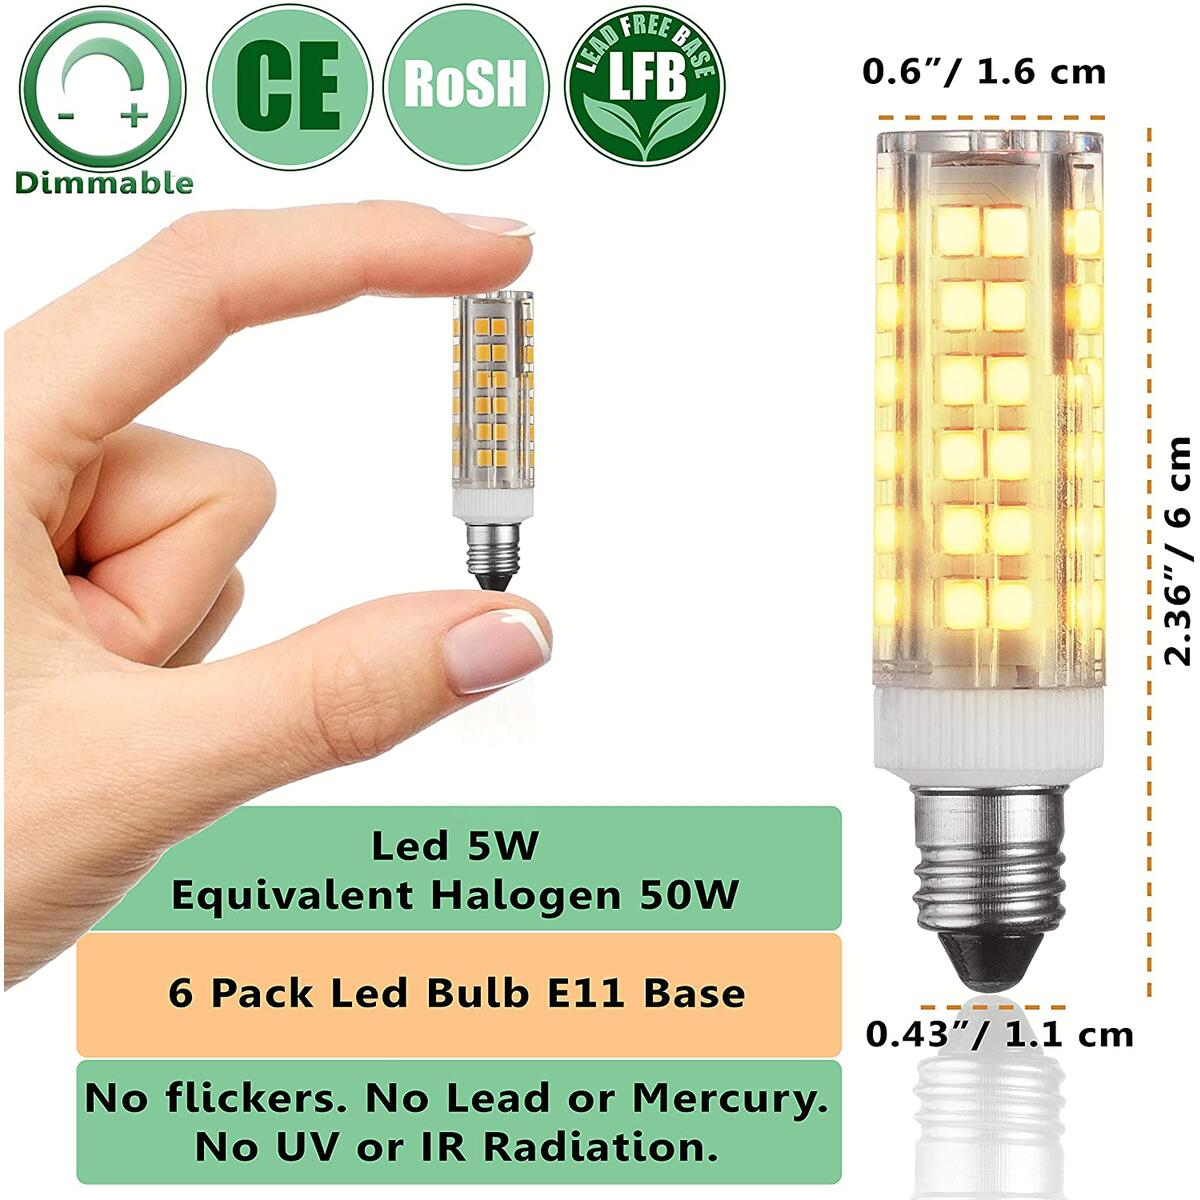 E11 LED Bulbs – 5W - 50W Halogen Replacement - Dimmable - Mini-Candelabra Base Light Bulb - Replaces T4 /T3 JDE11 – Ware White 3000K - for Ceiling Fans, Cabinet Lighting, Sconce & More - 4 Pack.